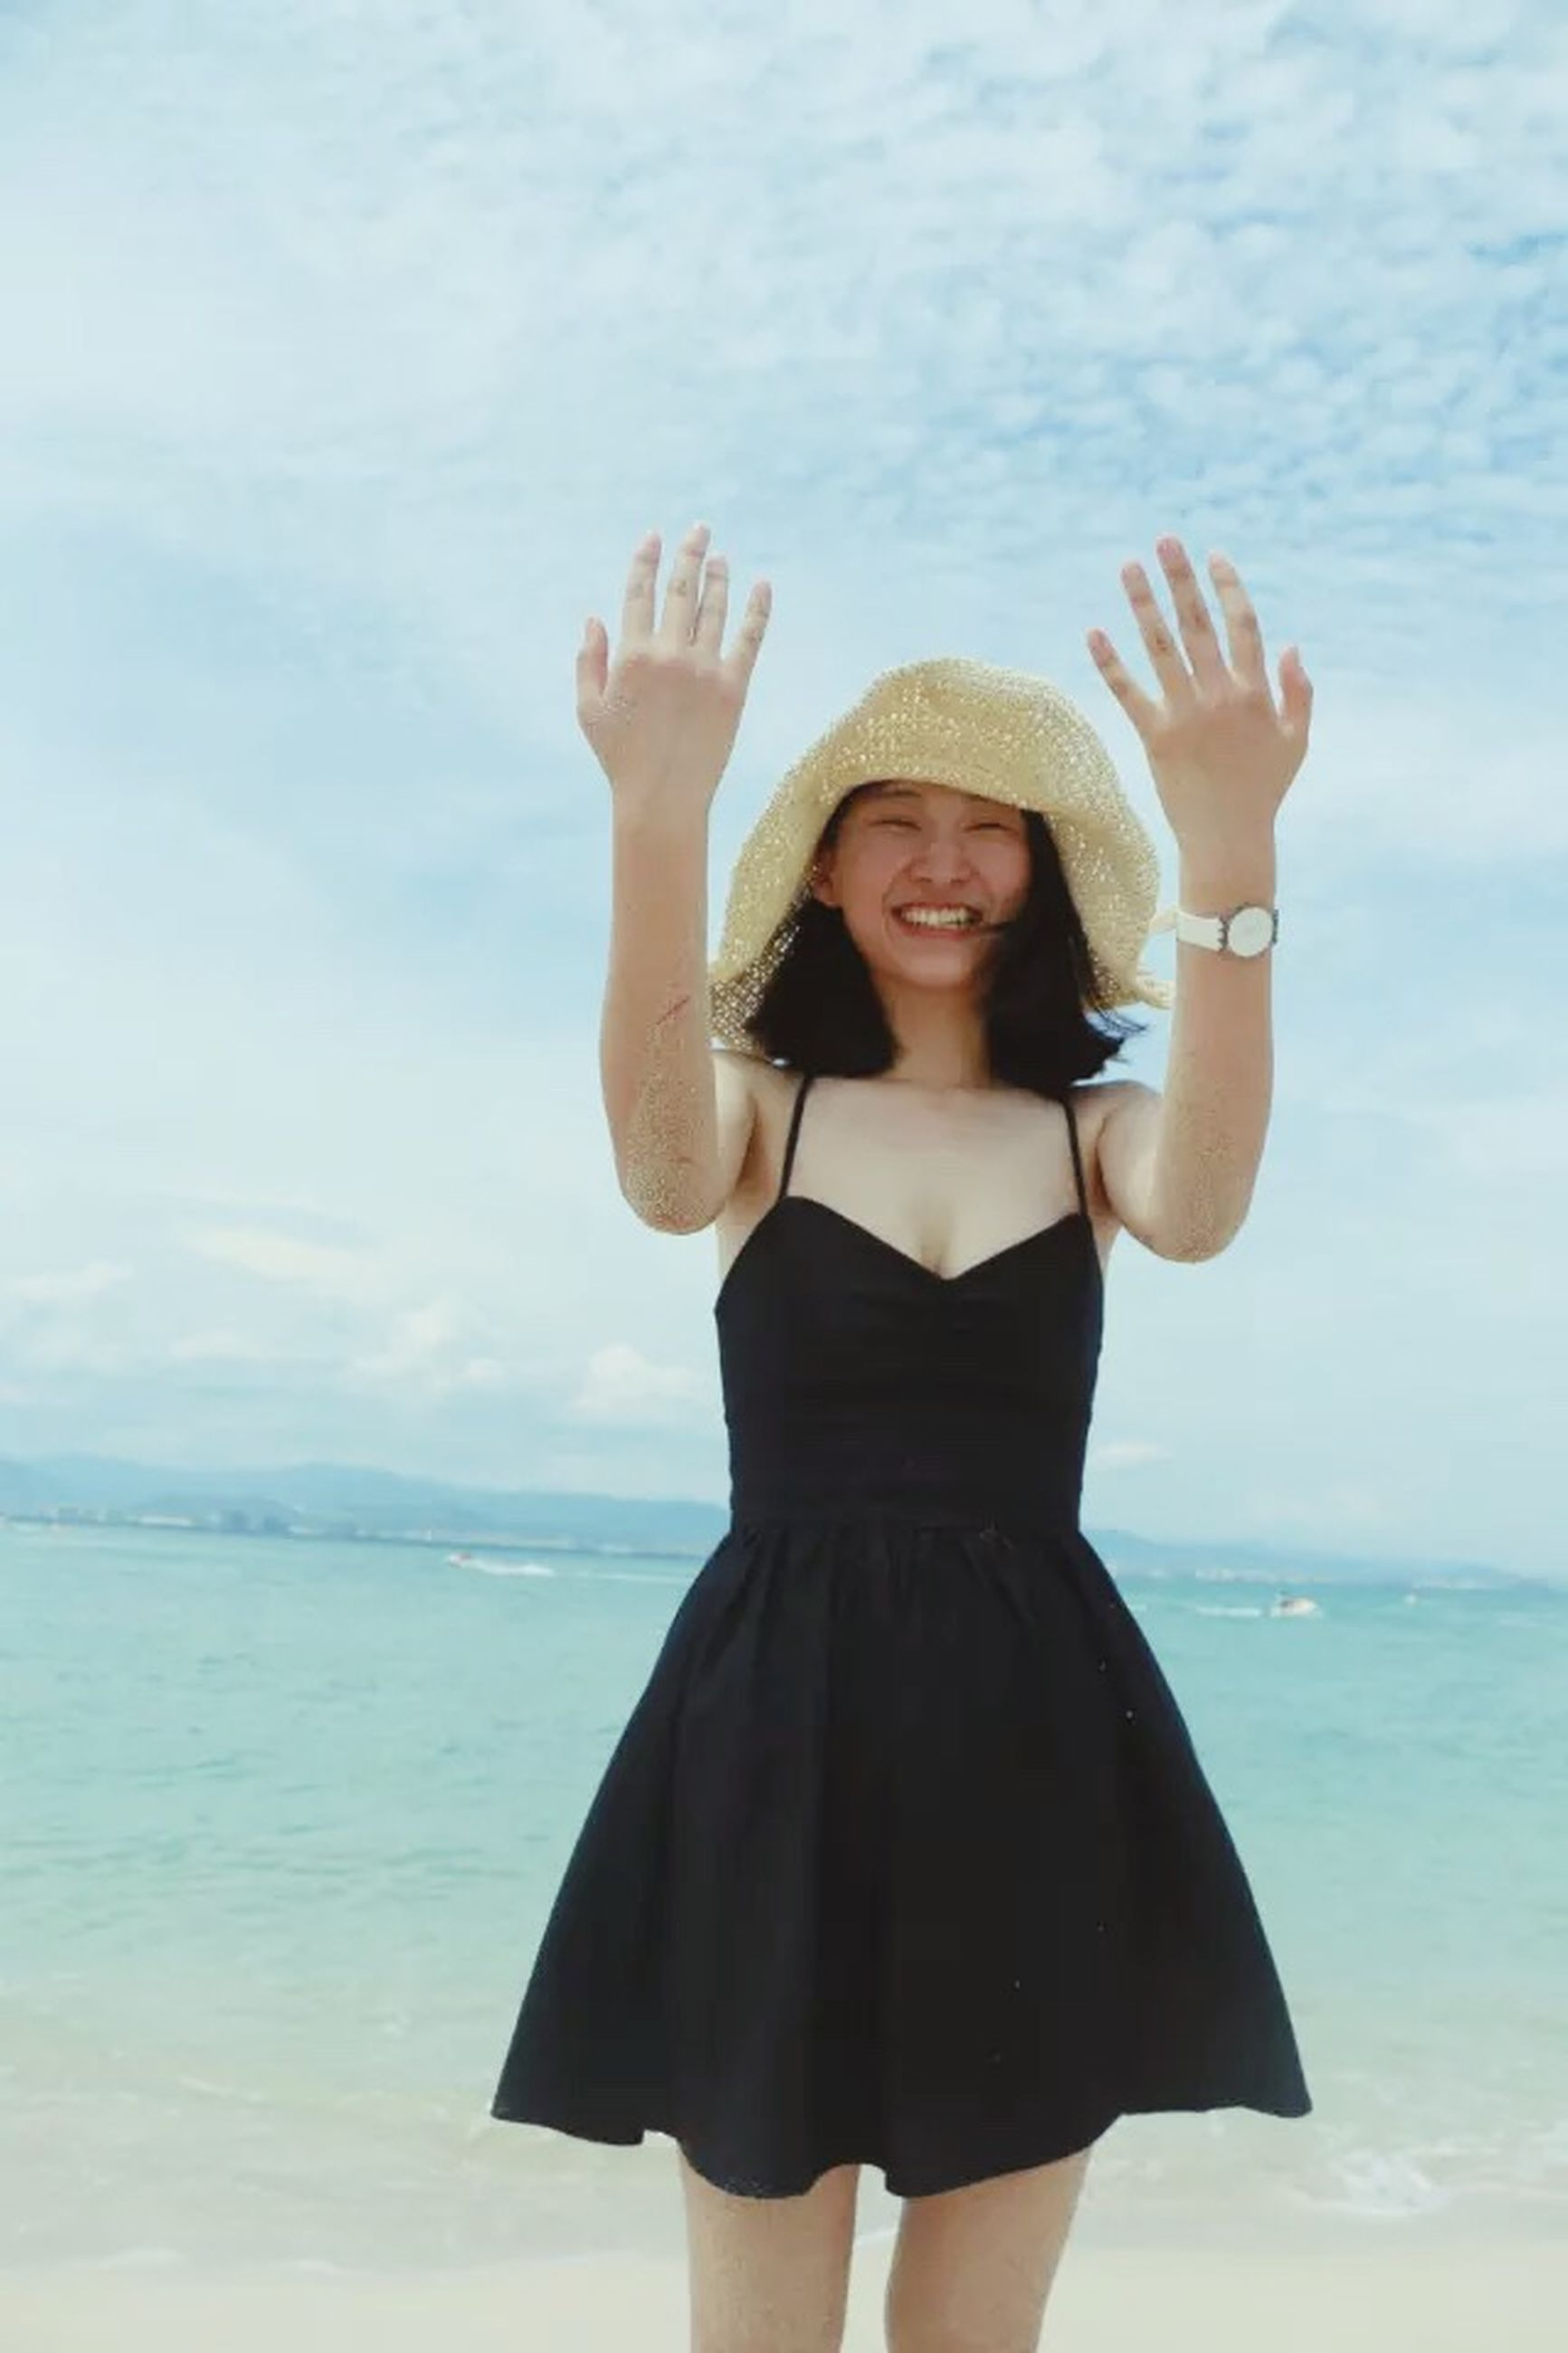 sea, young adult, lifestyles, water, standing, young women, three quarter length, leisure activity, person, beach, casual clothing, sky, horizon over water, looking at camera, front view, portrait, vacations